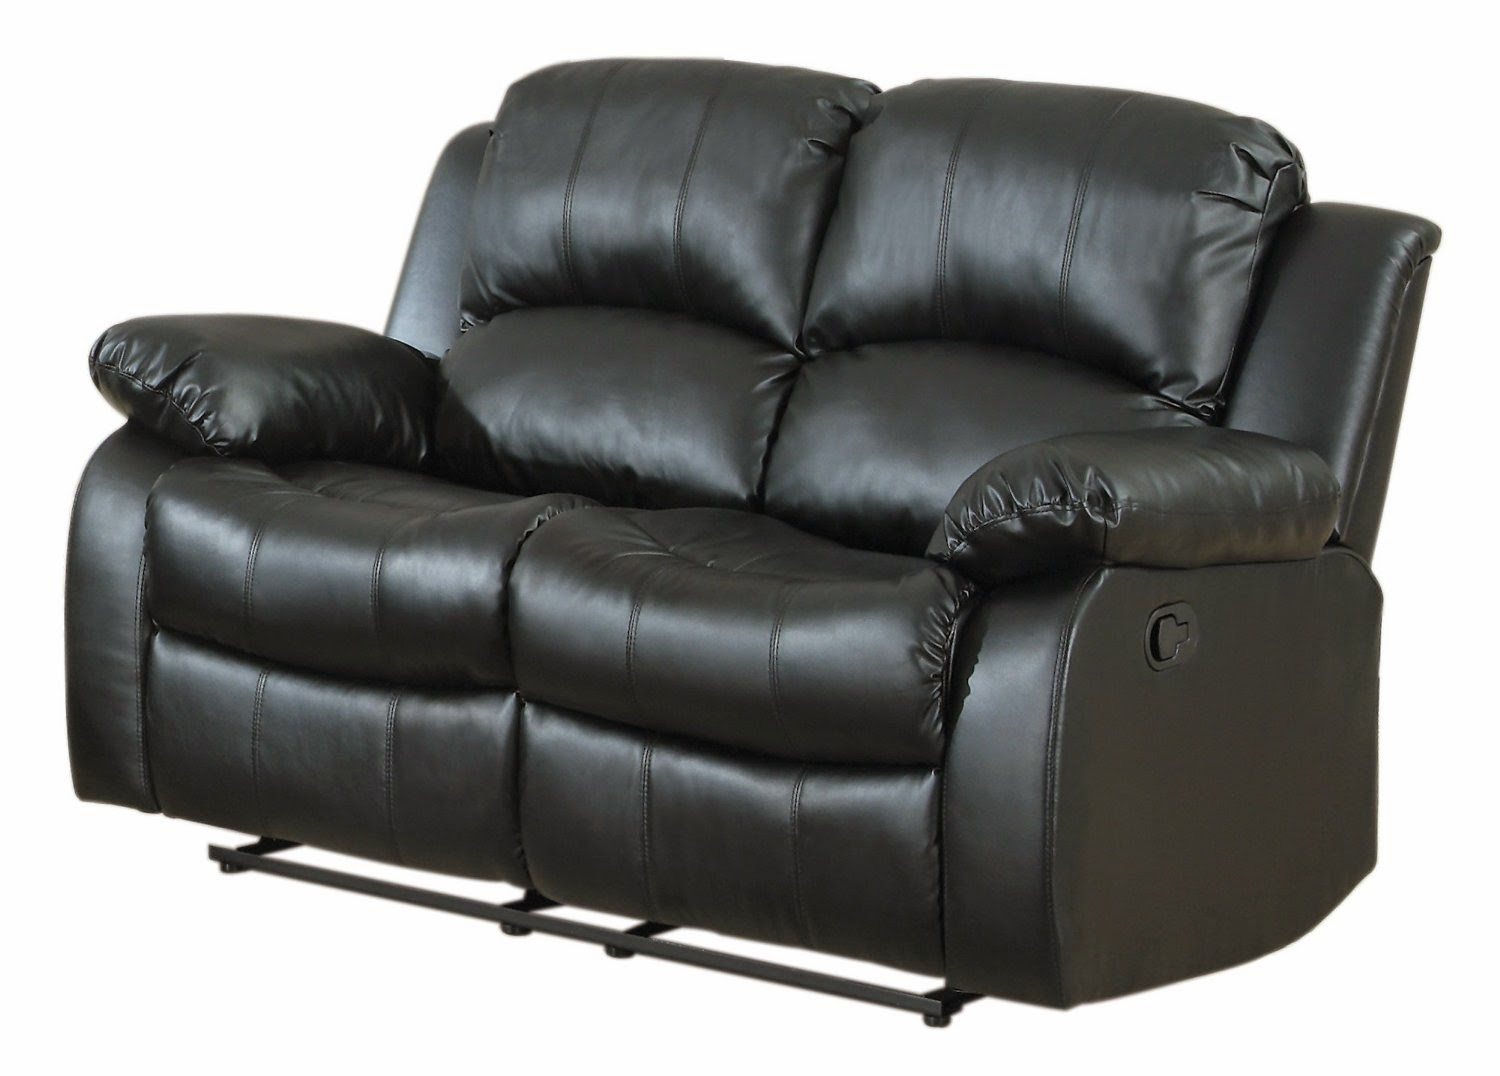 Cheap recliner sofas for sale black leather reclining sofa and loveseat Leather reclining sofa loveseat